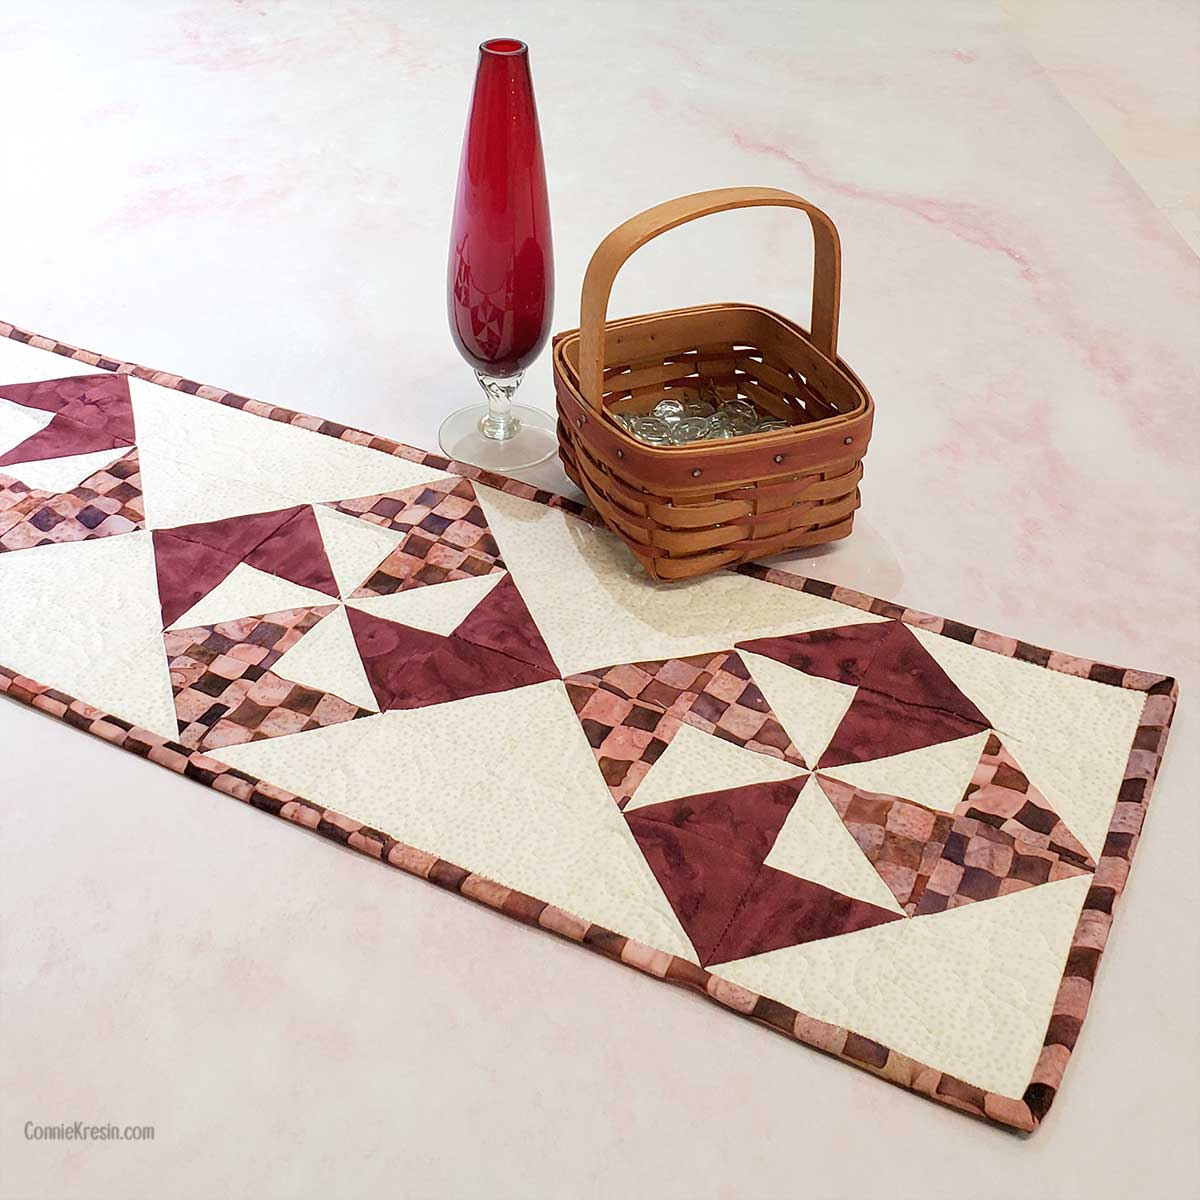 Pinwheel Table runner with vase and basket